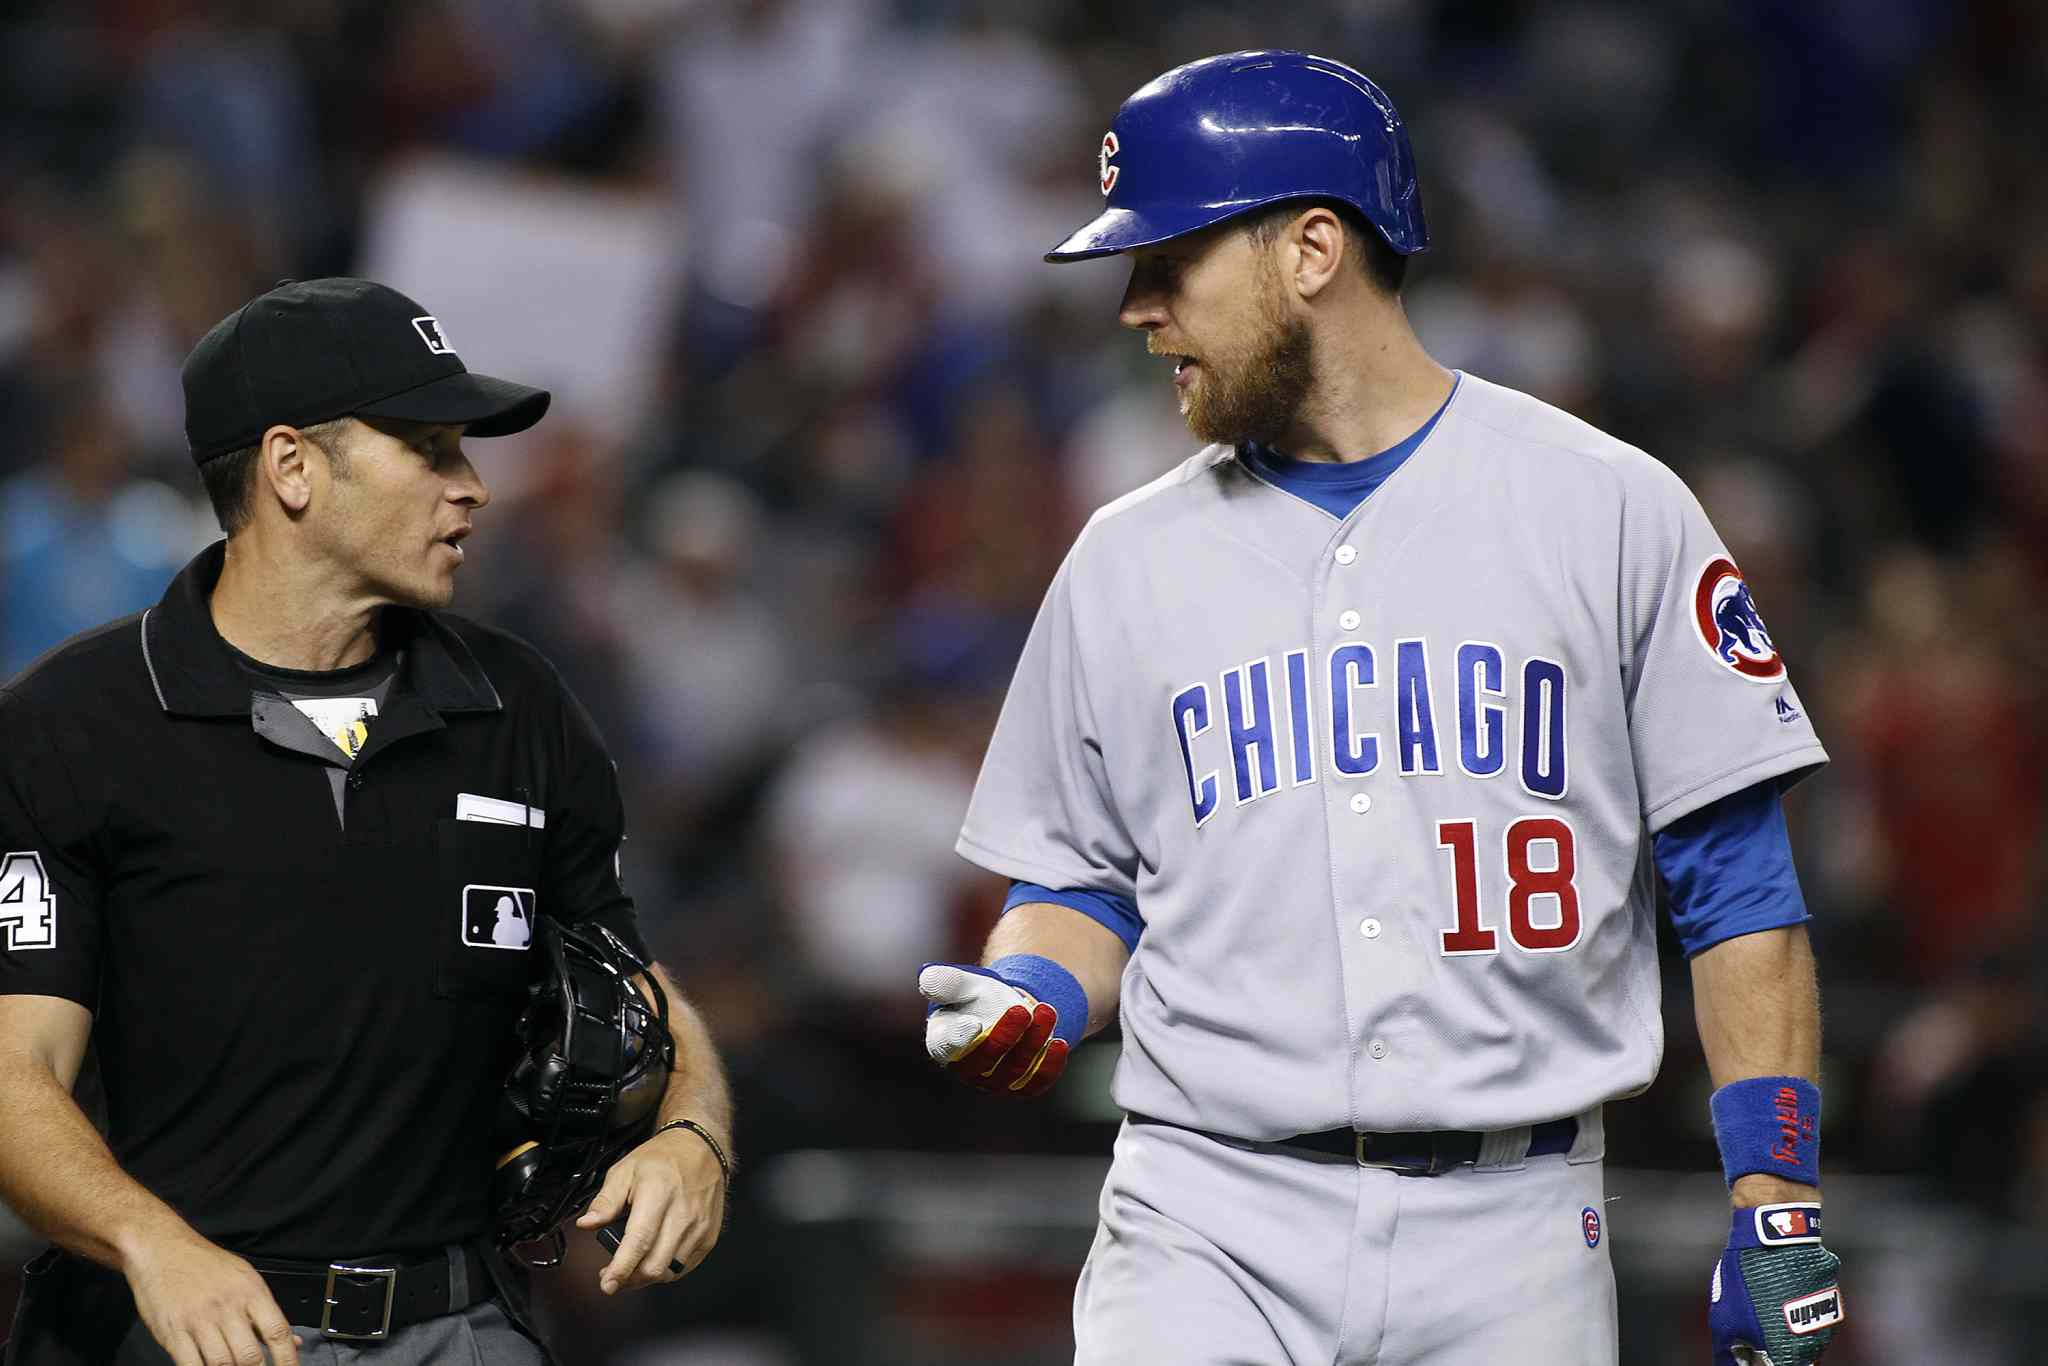 Chicago Cubs' Ben Zobrist (18) talks with home plate umpire Mark Wegner after being called out on strikes to end the baseball game against the Arizona Diamondbacks on Saturday, Aug. 12, 2017, in Phoenix. The Diamondbacks defeated the Cubs 6-2. (AP Photo/Ralph Freso)